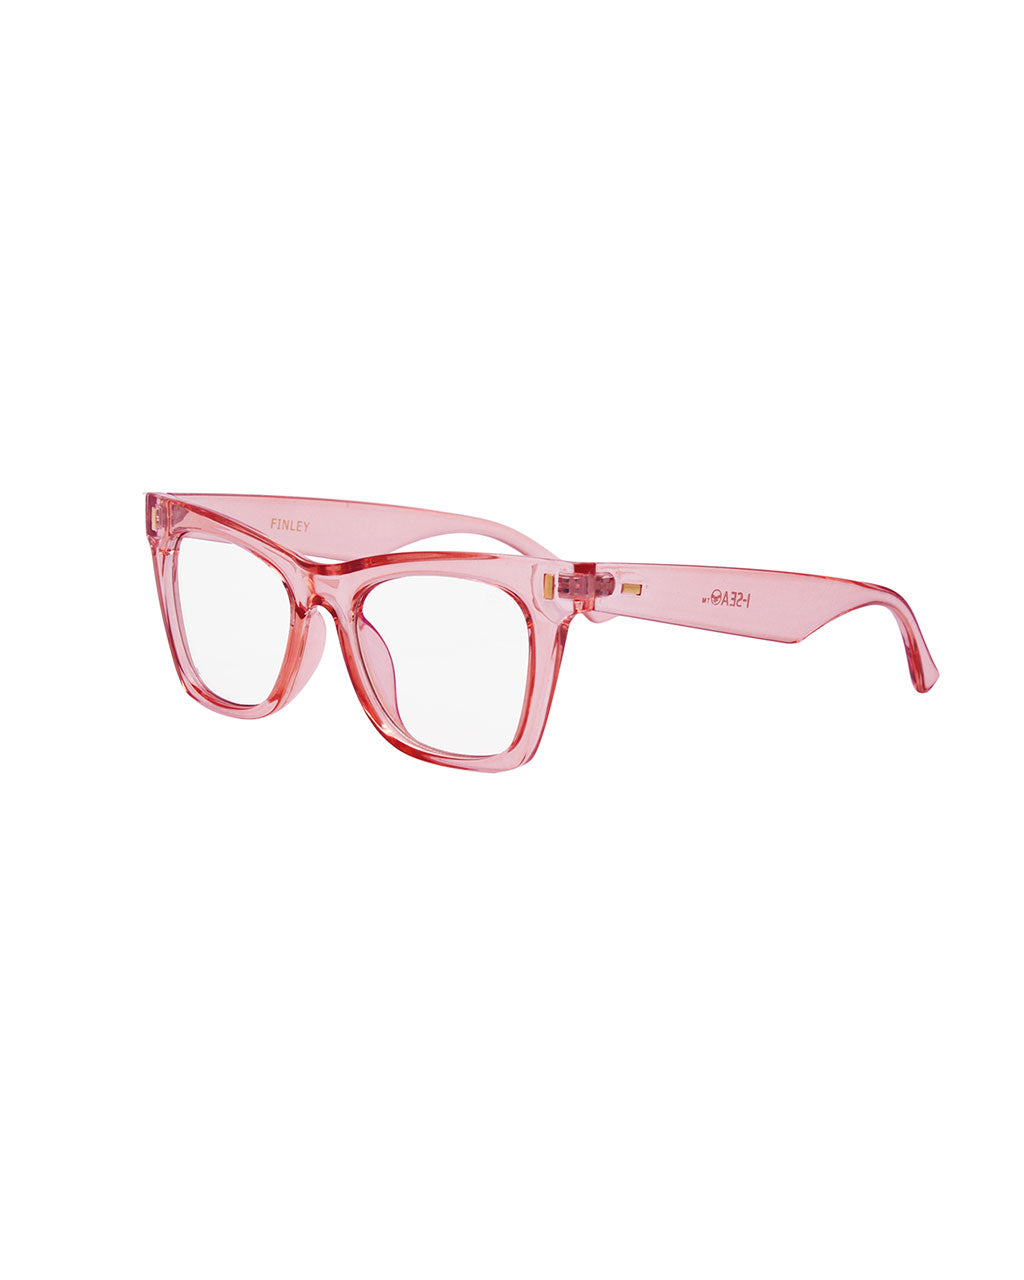 side view of pink blue light glasses with a cat eye like frame